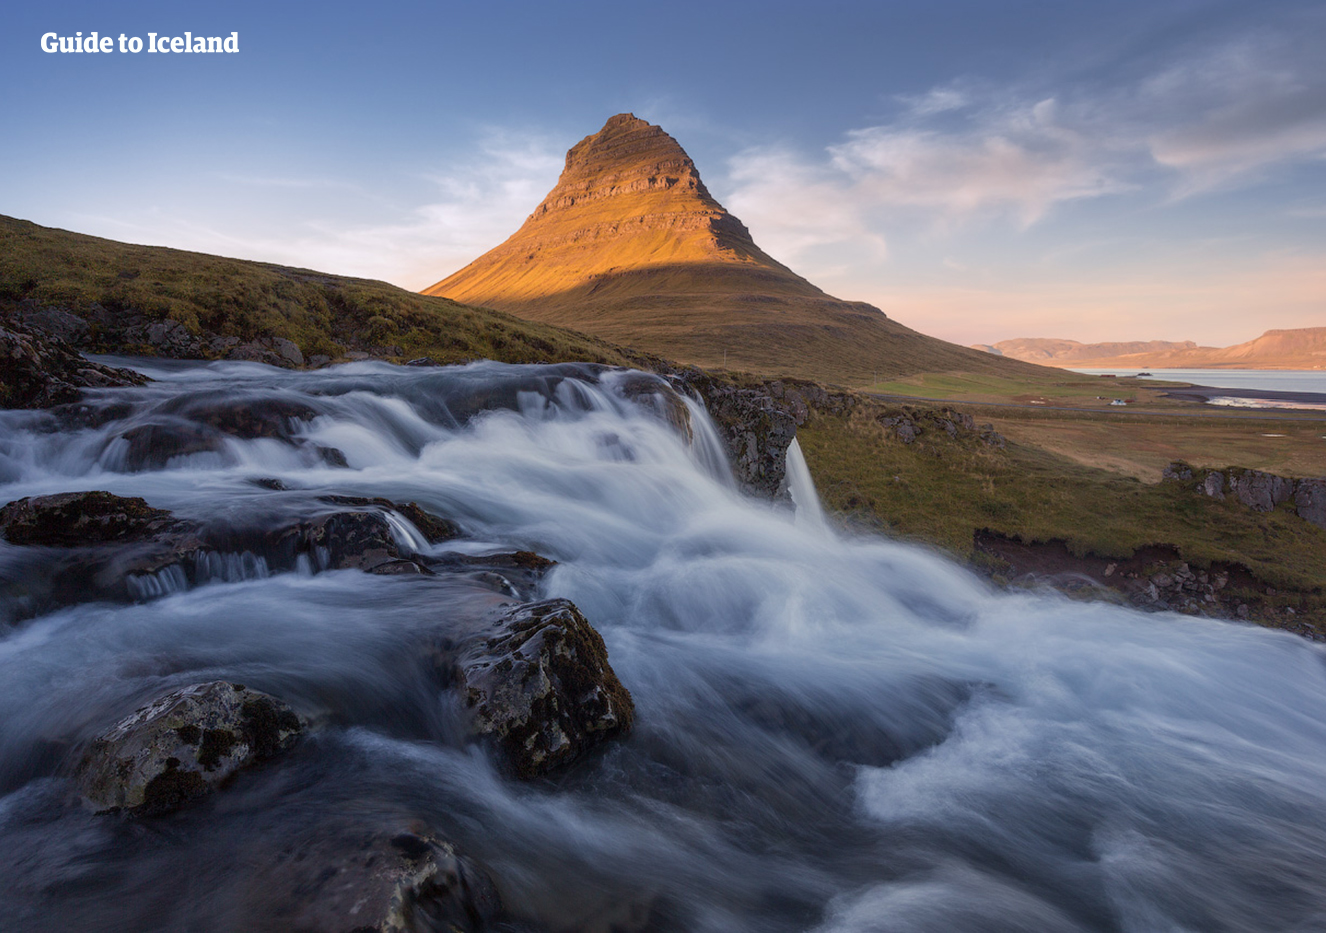 The Snæfellsnes Peninsula is filled with natural wonders like the majestic Kirkjufell mountain and the trickling waterfall in front of it